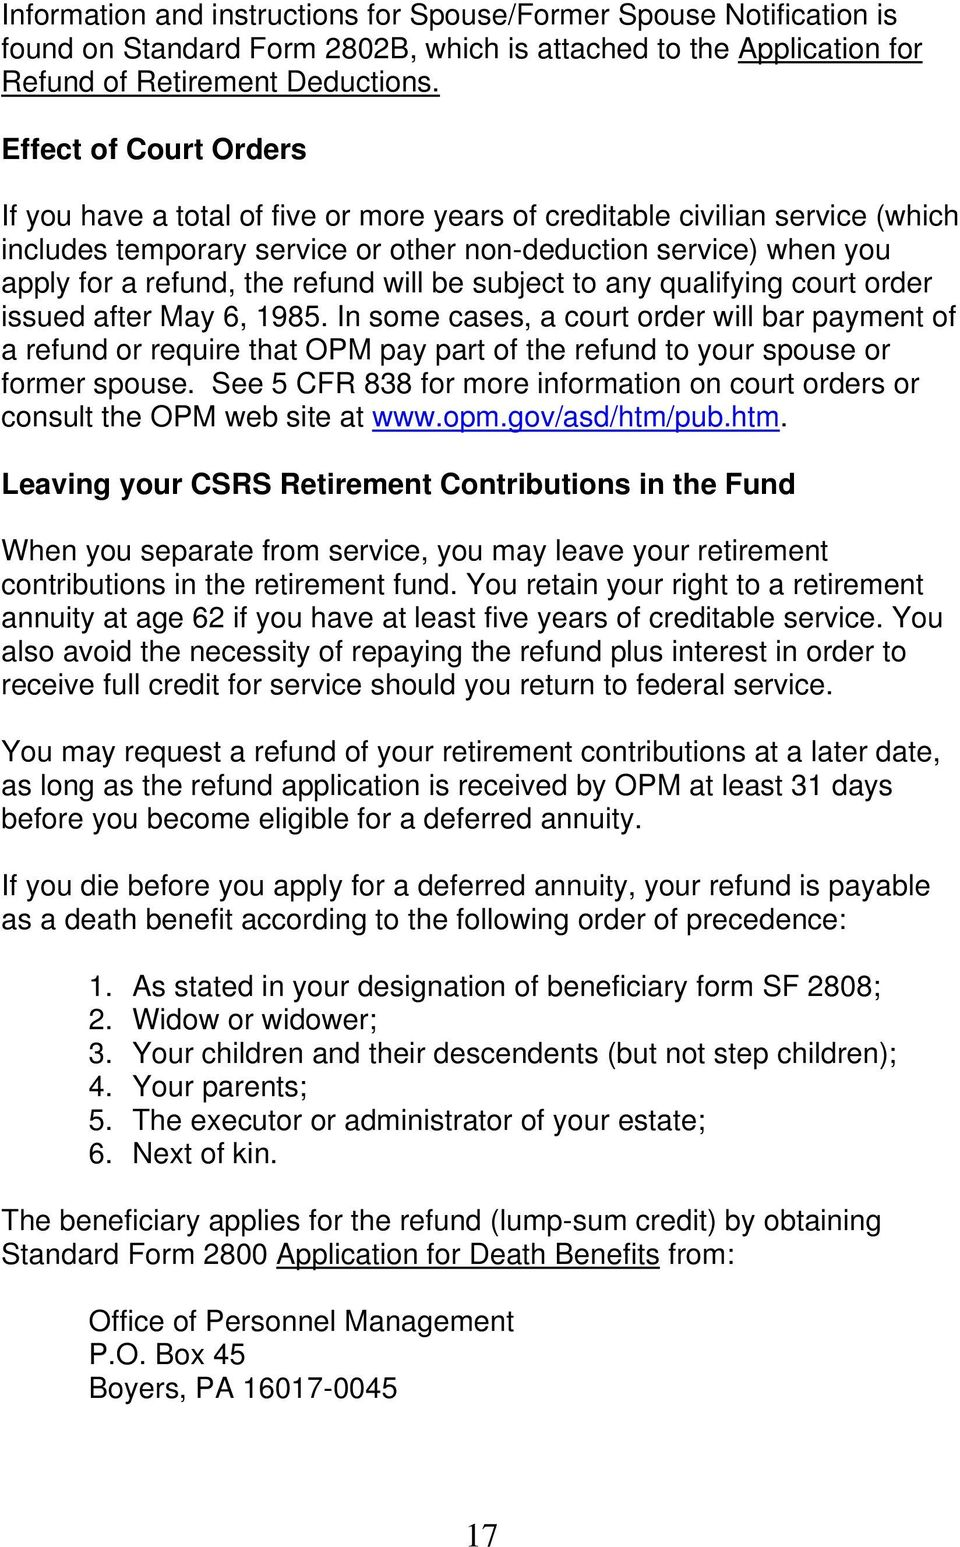 refund will be subject to any qualifying court order issued after May 6, 1985.